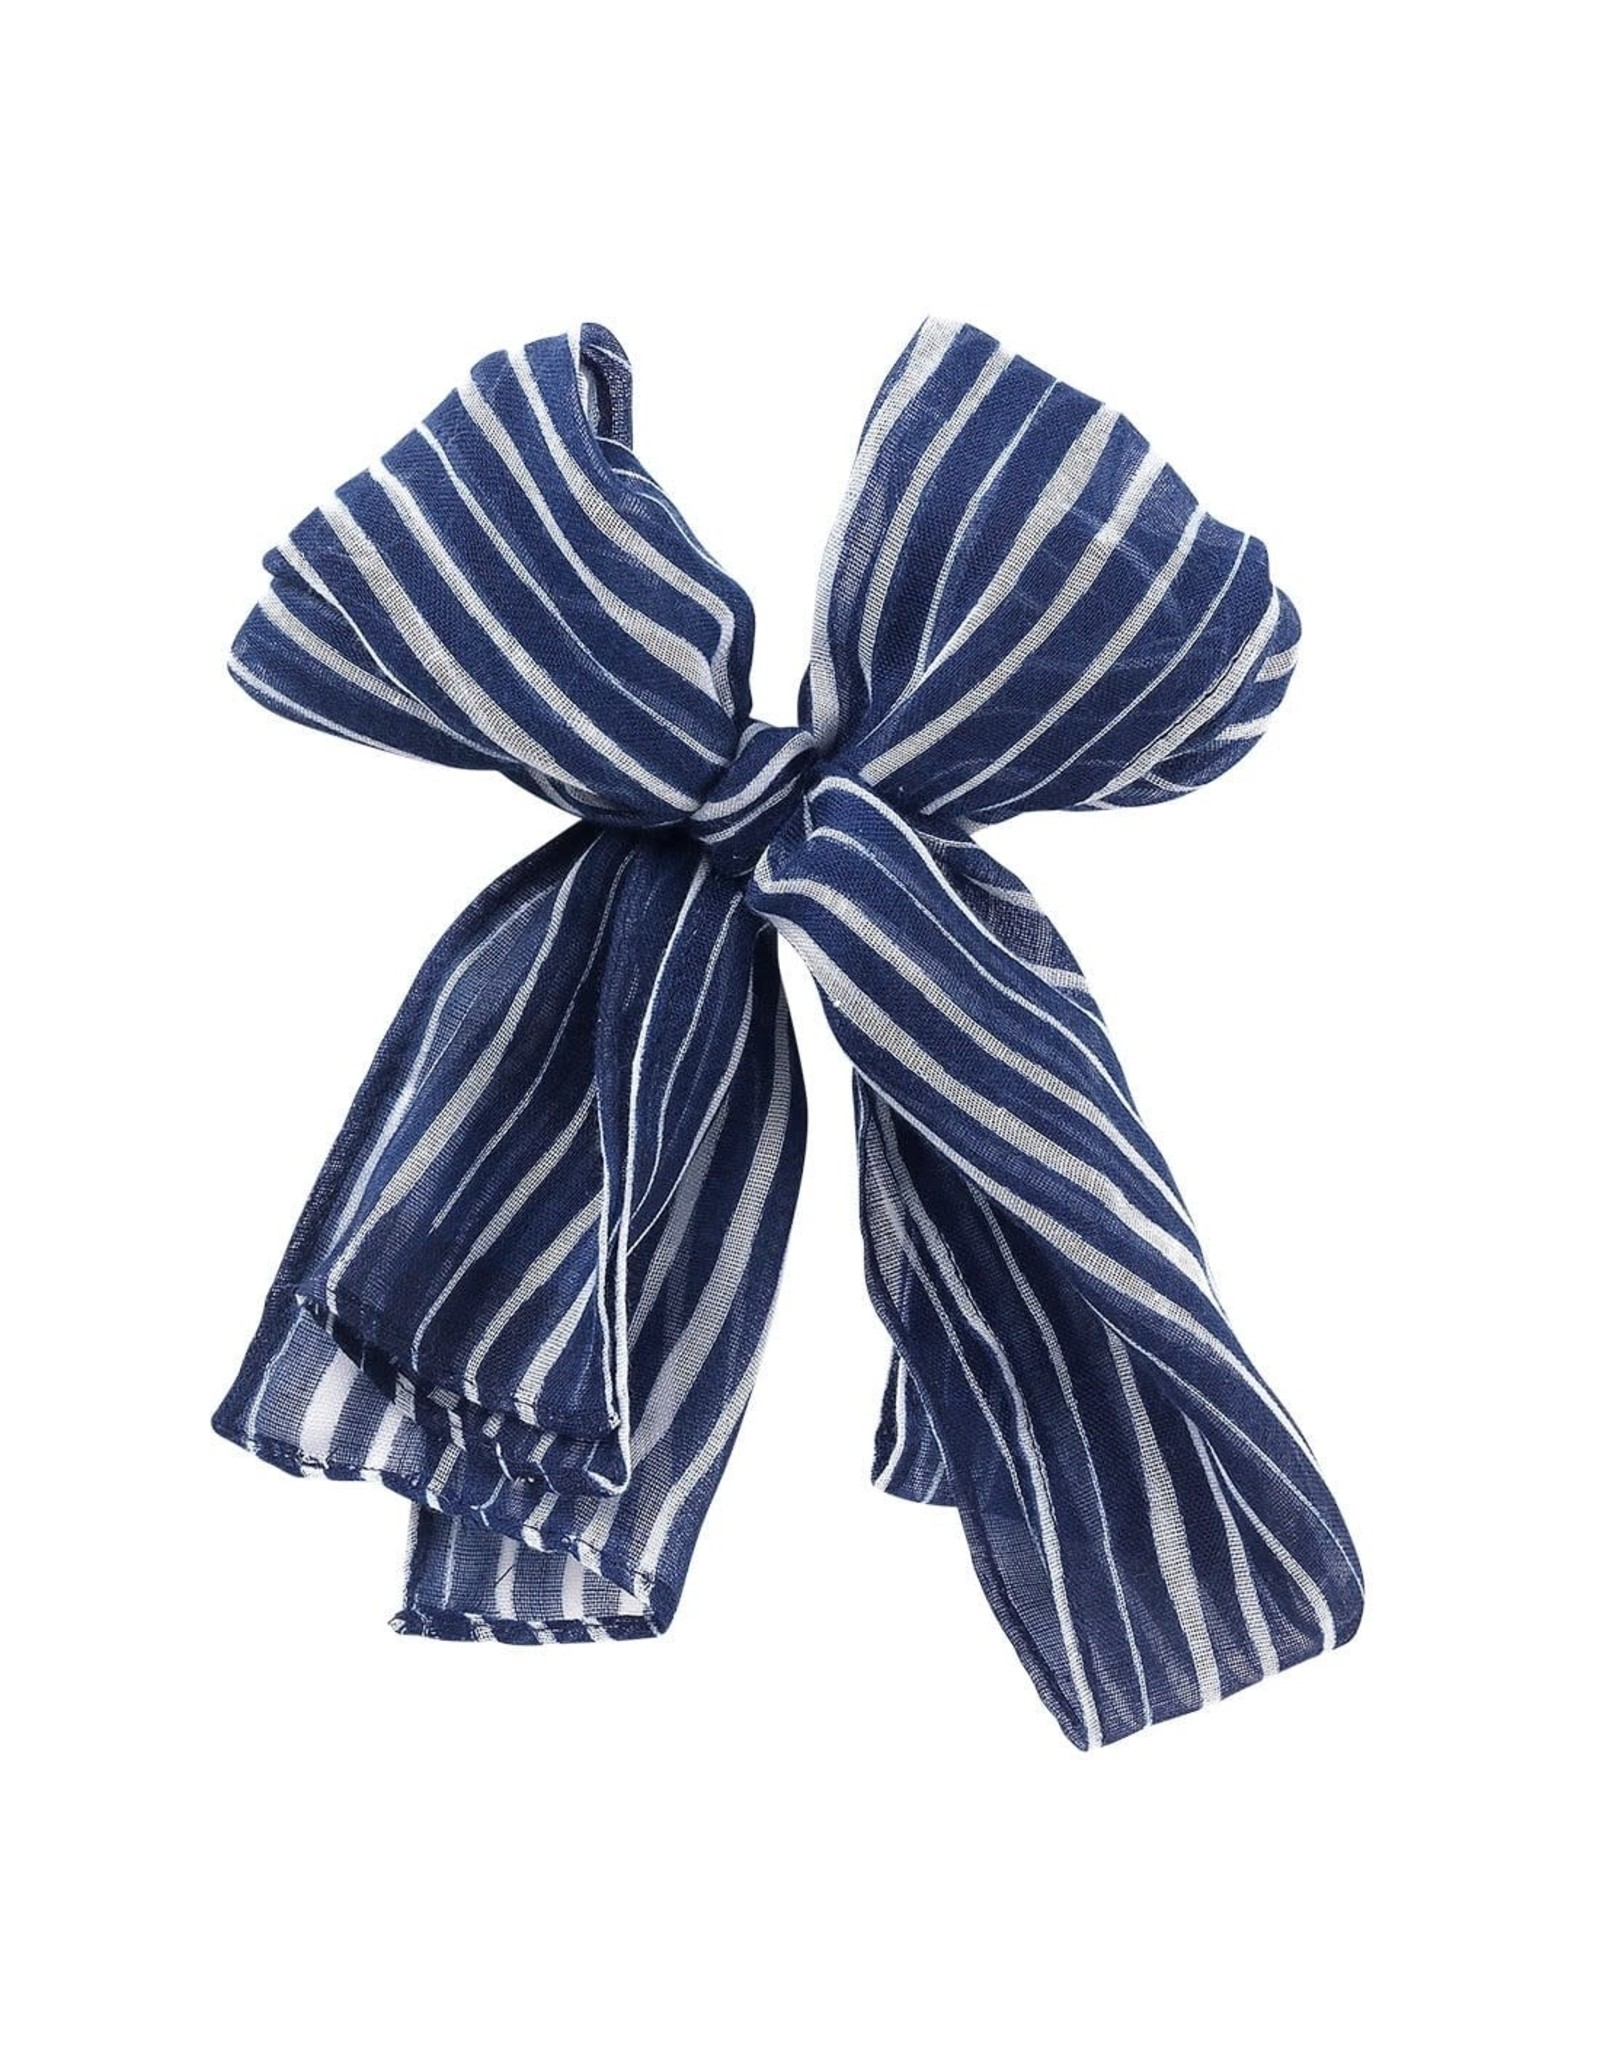 Viv & Lou TIDE Navy & White Stripe Scarf